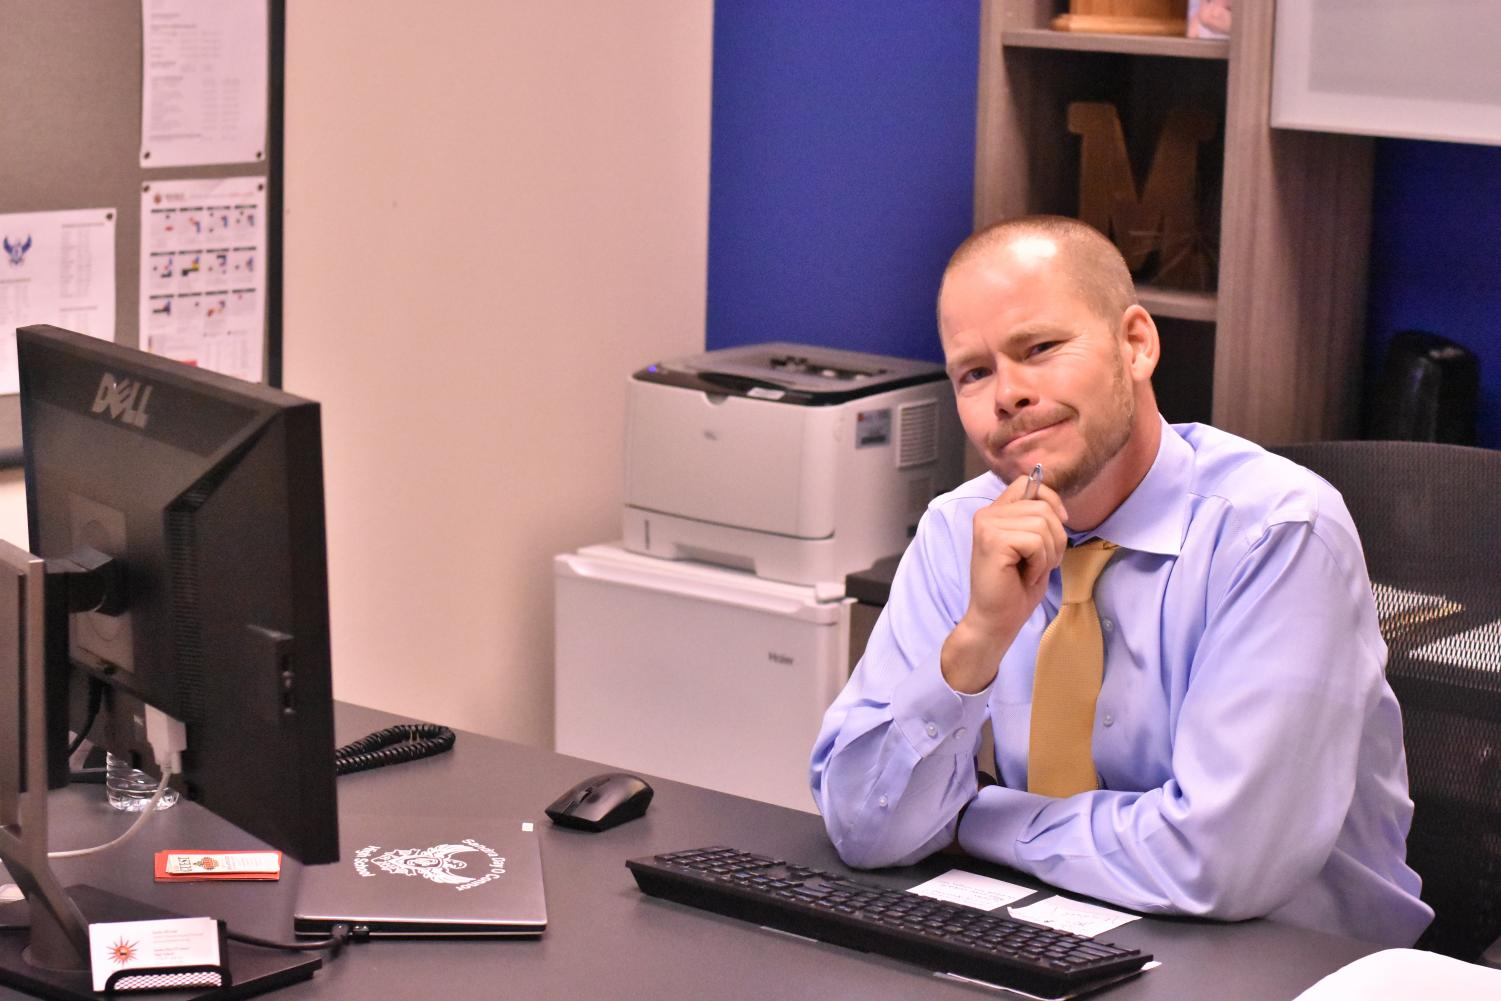 Mr. McLain makes a goofy countenance while working in his office.